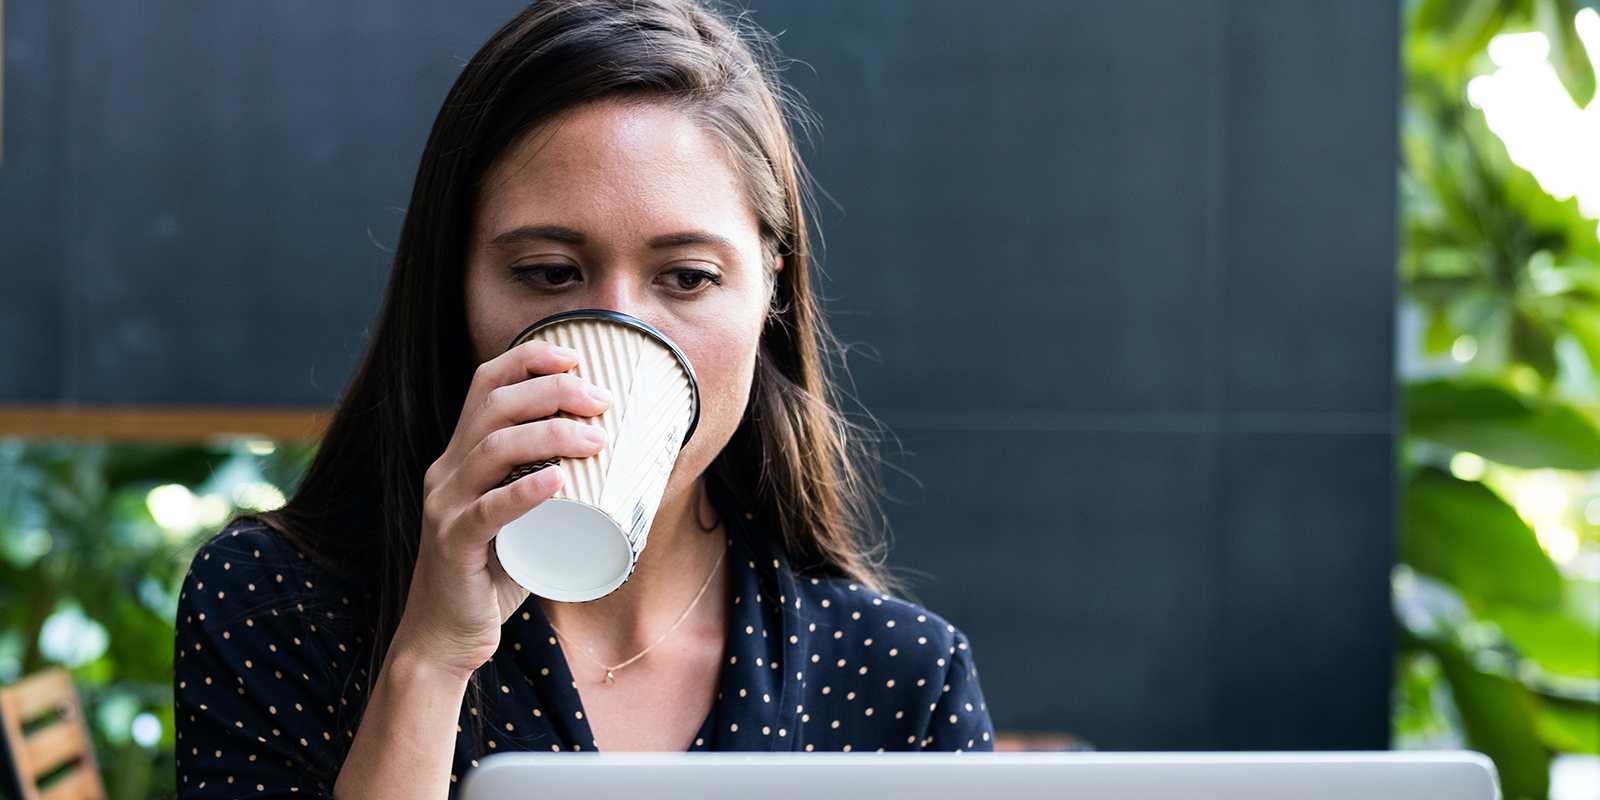 A woman drinking coffee while working at her laptop